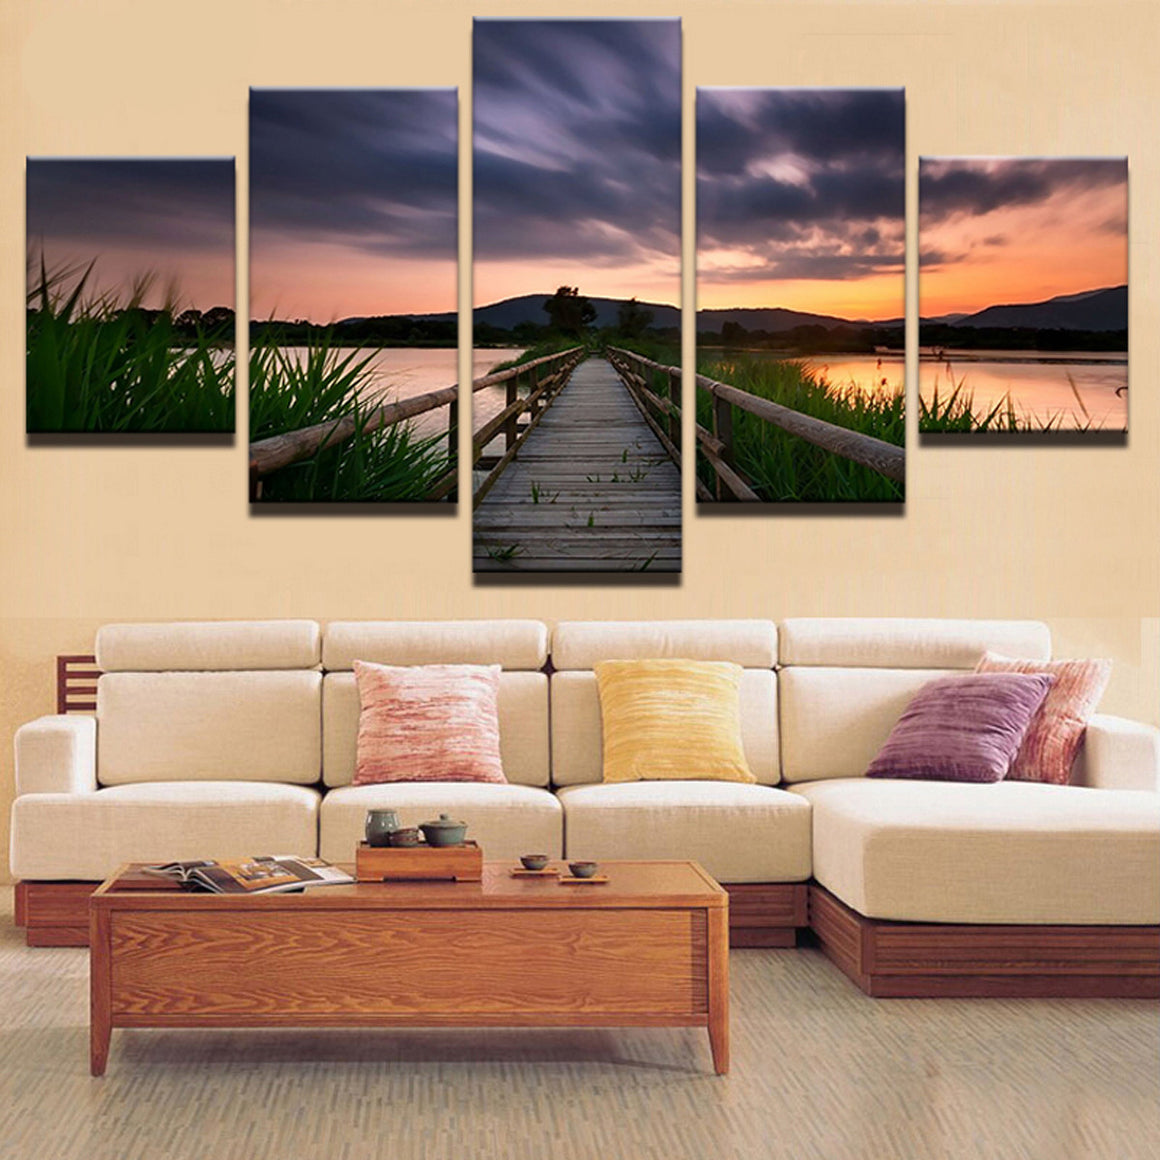 https://cdn.shopify.com/s/files/1/1198/5164/products/PENGDA-Canvas-Art-Wall-Picture-Home-Decoration-Living-Room-Canvas-Print-Painting-5-Panel-Bridge-Sunset_580x@2x.jpg?v=1494687961